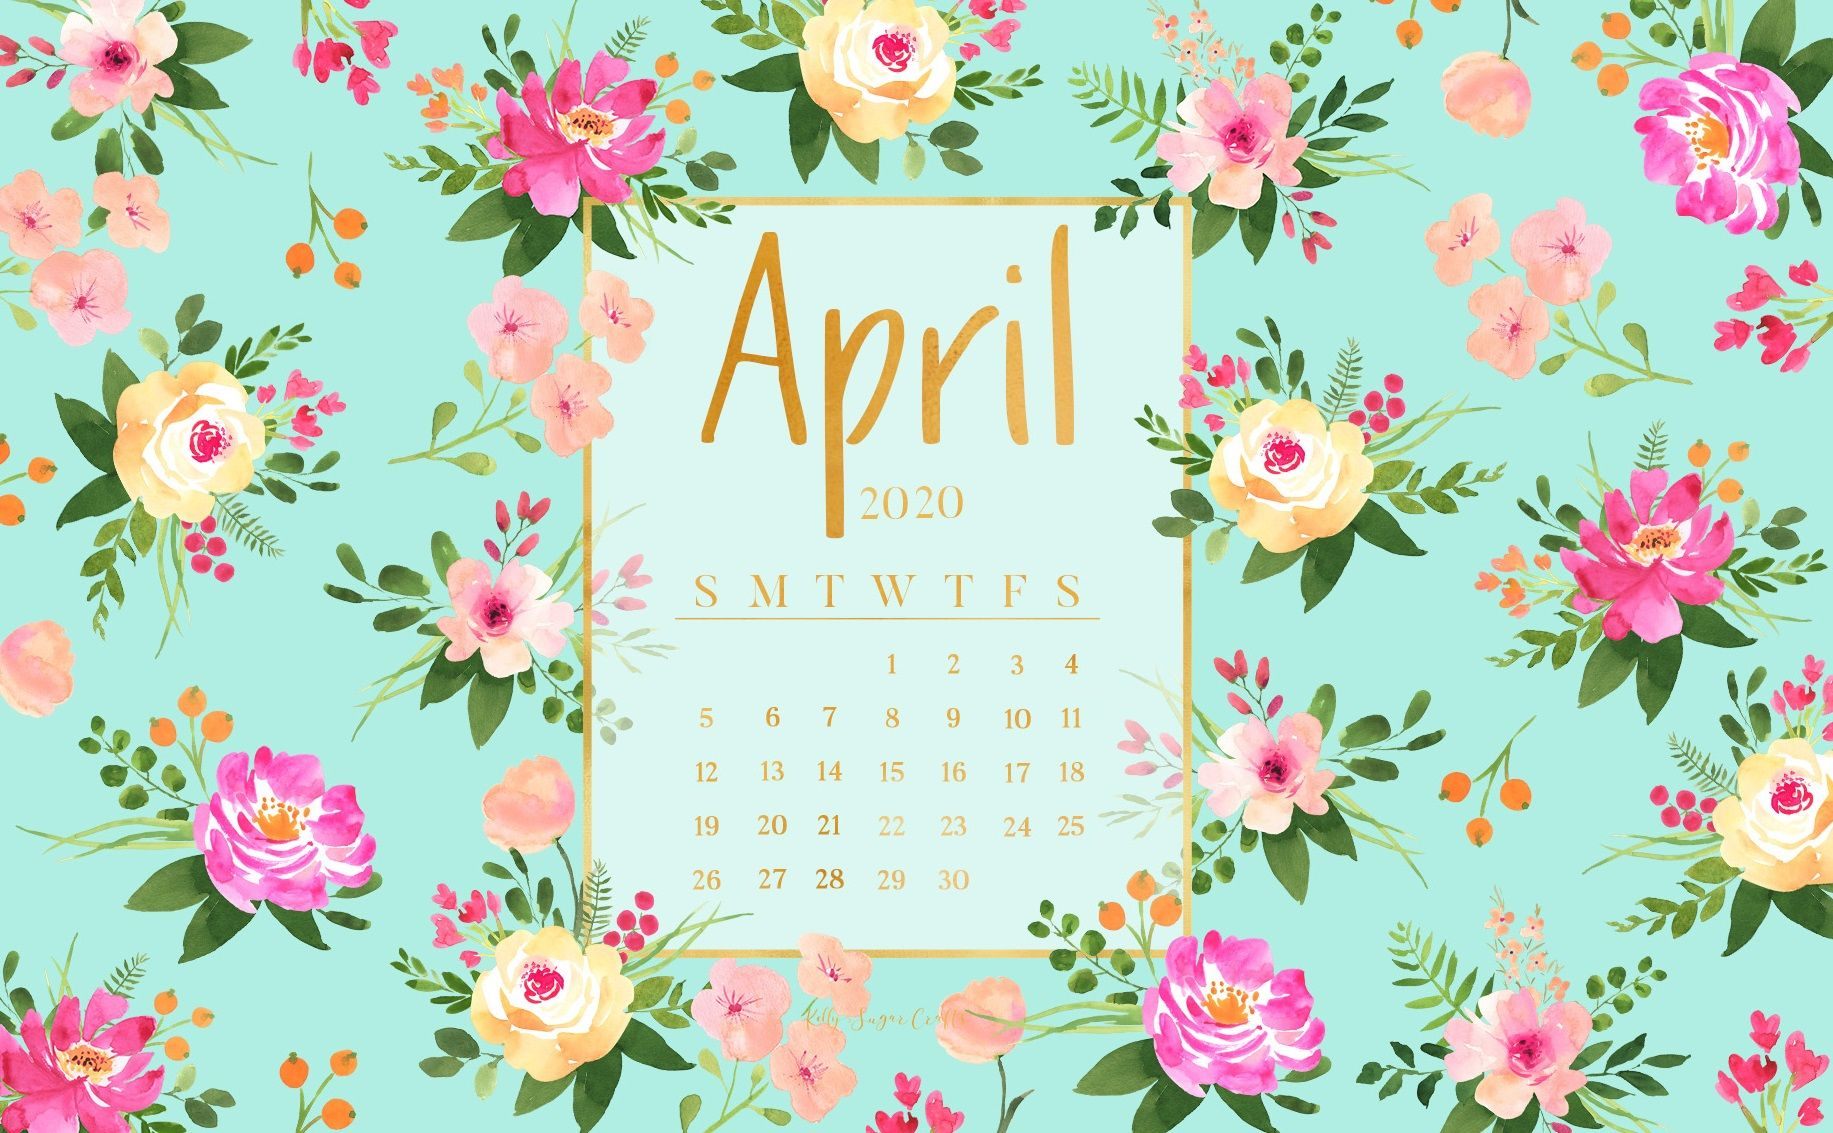 April 2020 Wallpaper Calendar In 2020 Calendar Wallpaper